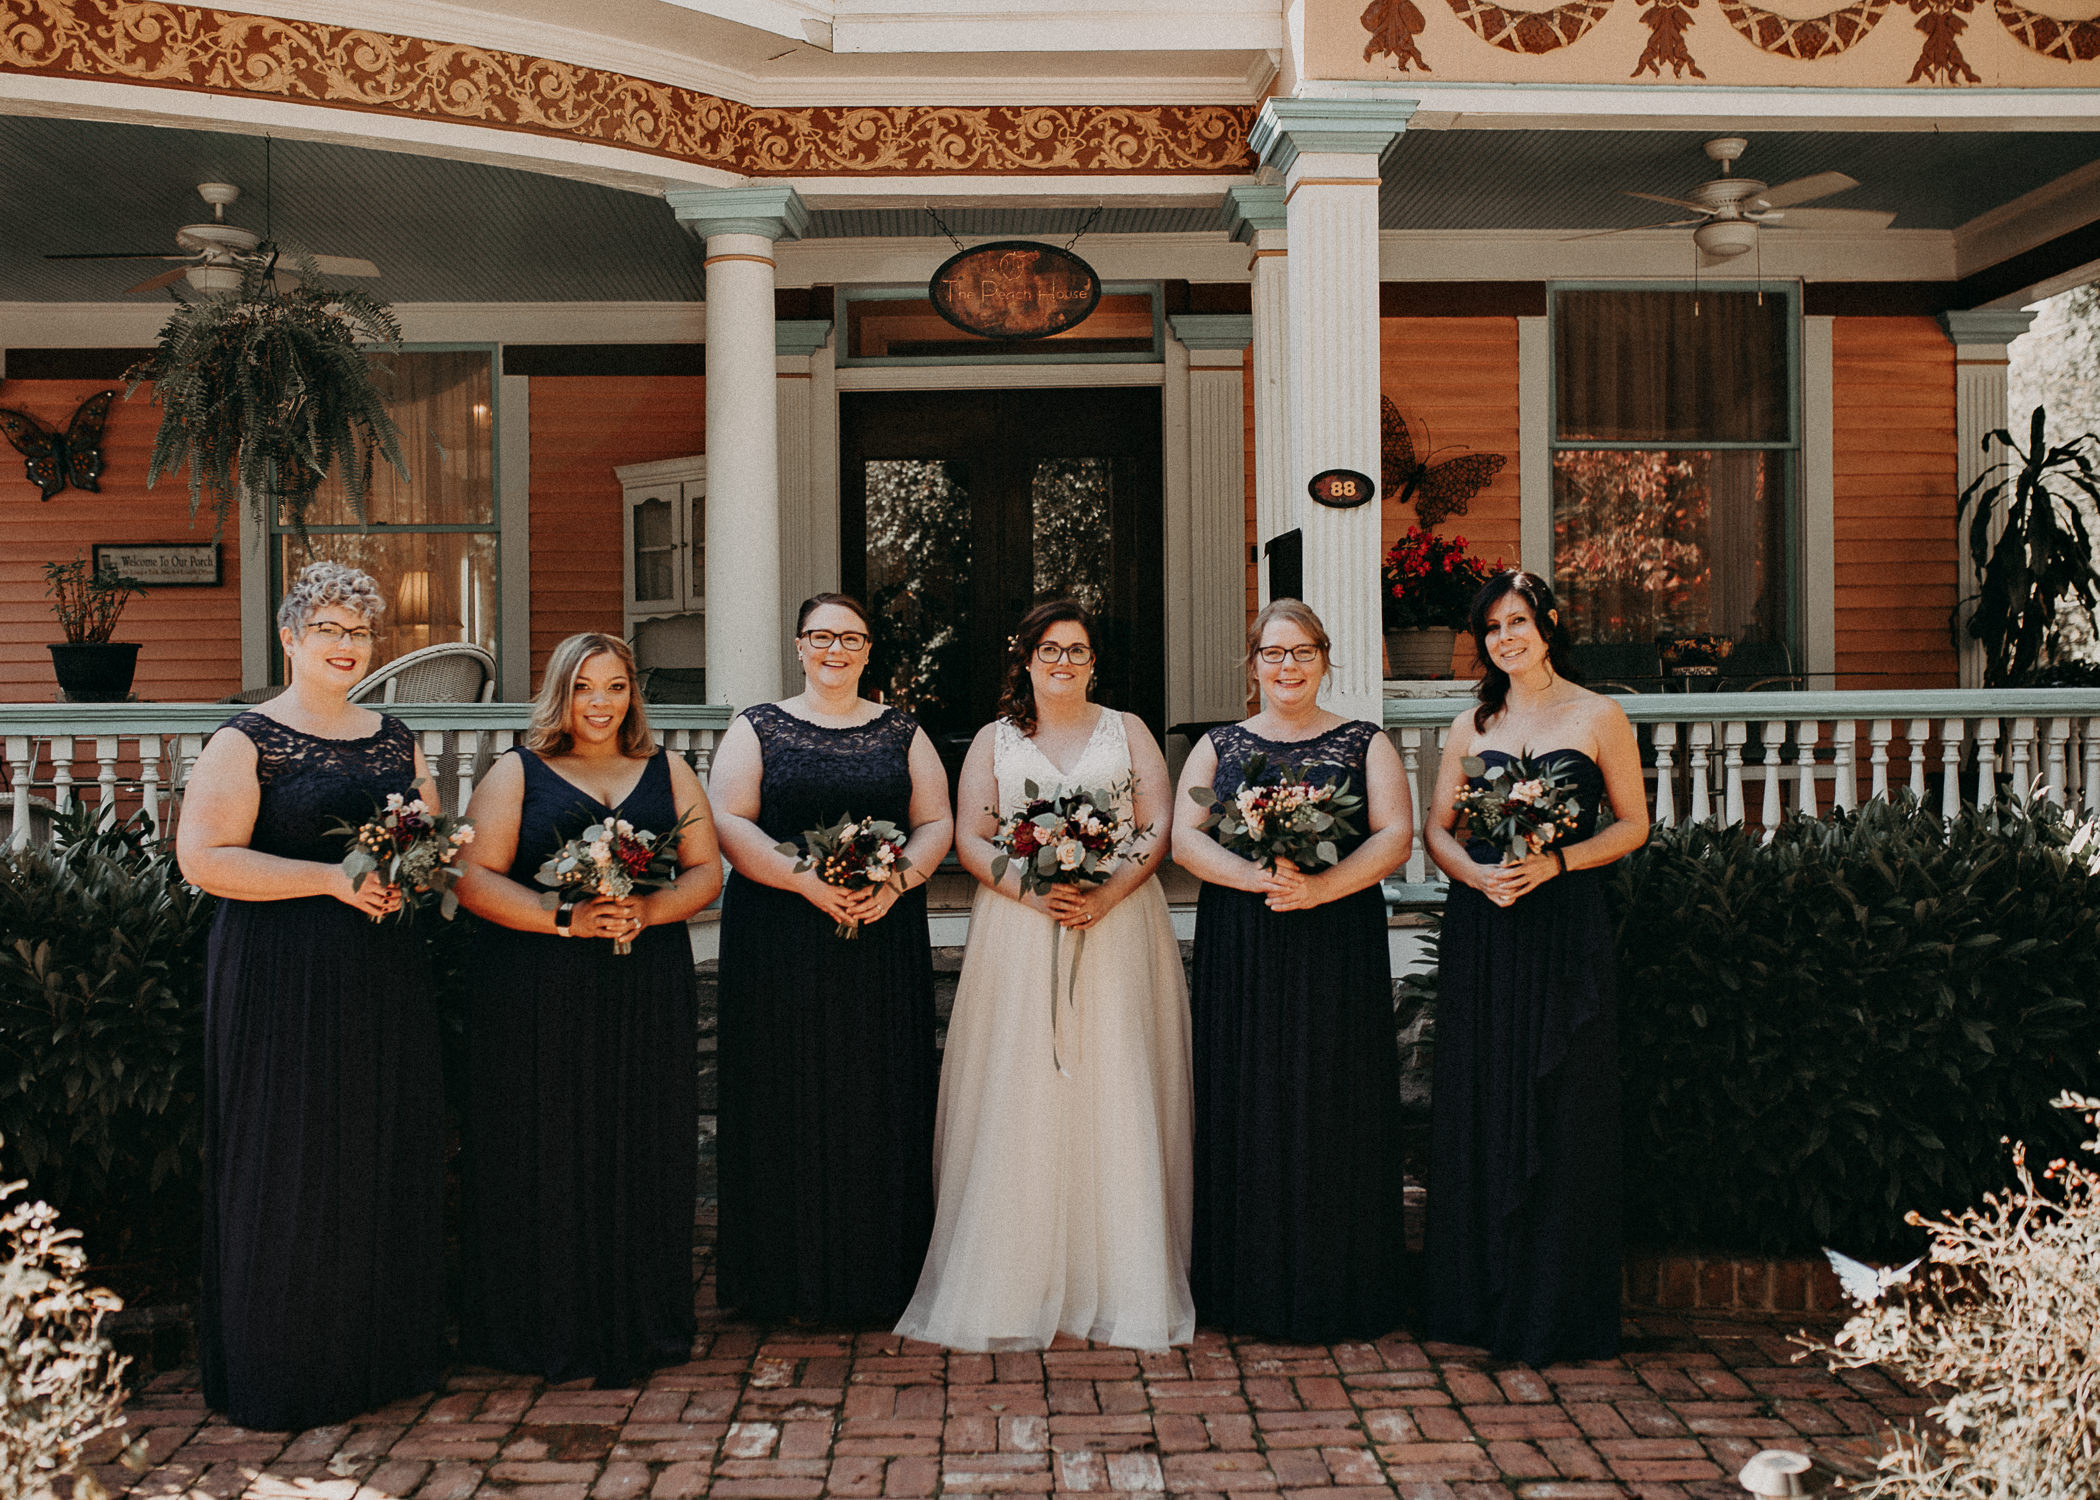 50 - Atlanta wedding photographer - Same sex wedding - wedding dress - details - ceremony - reception - bridal party - two brides. Aline Marin Photography .jpg.JPG